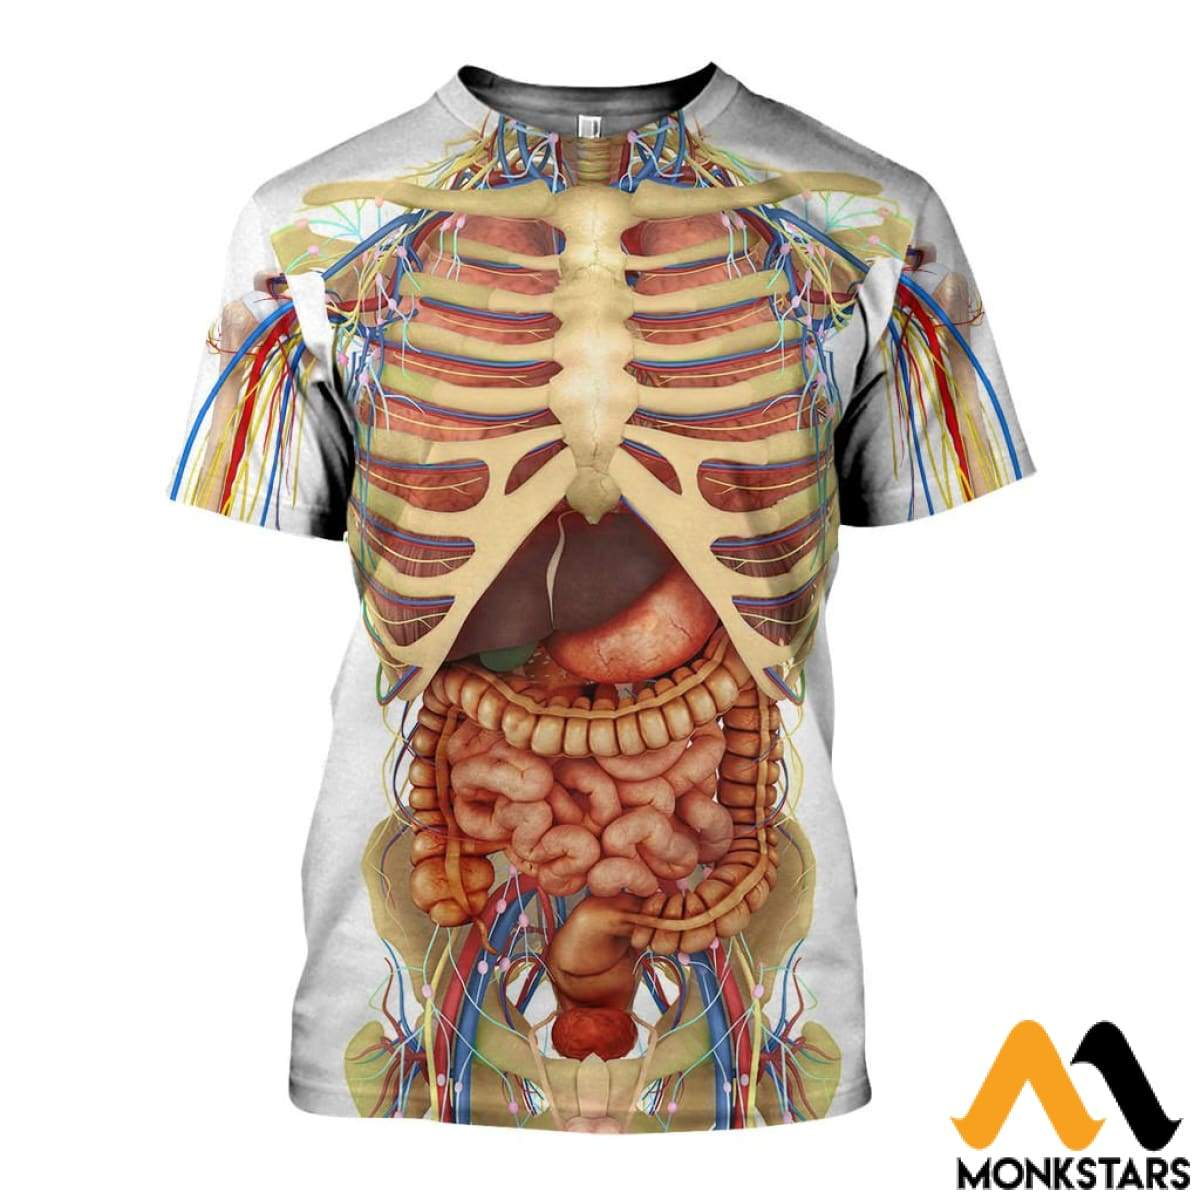 3d All Over Printed Transparent Human Body Organs Shirts And Shorts